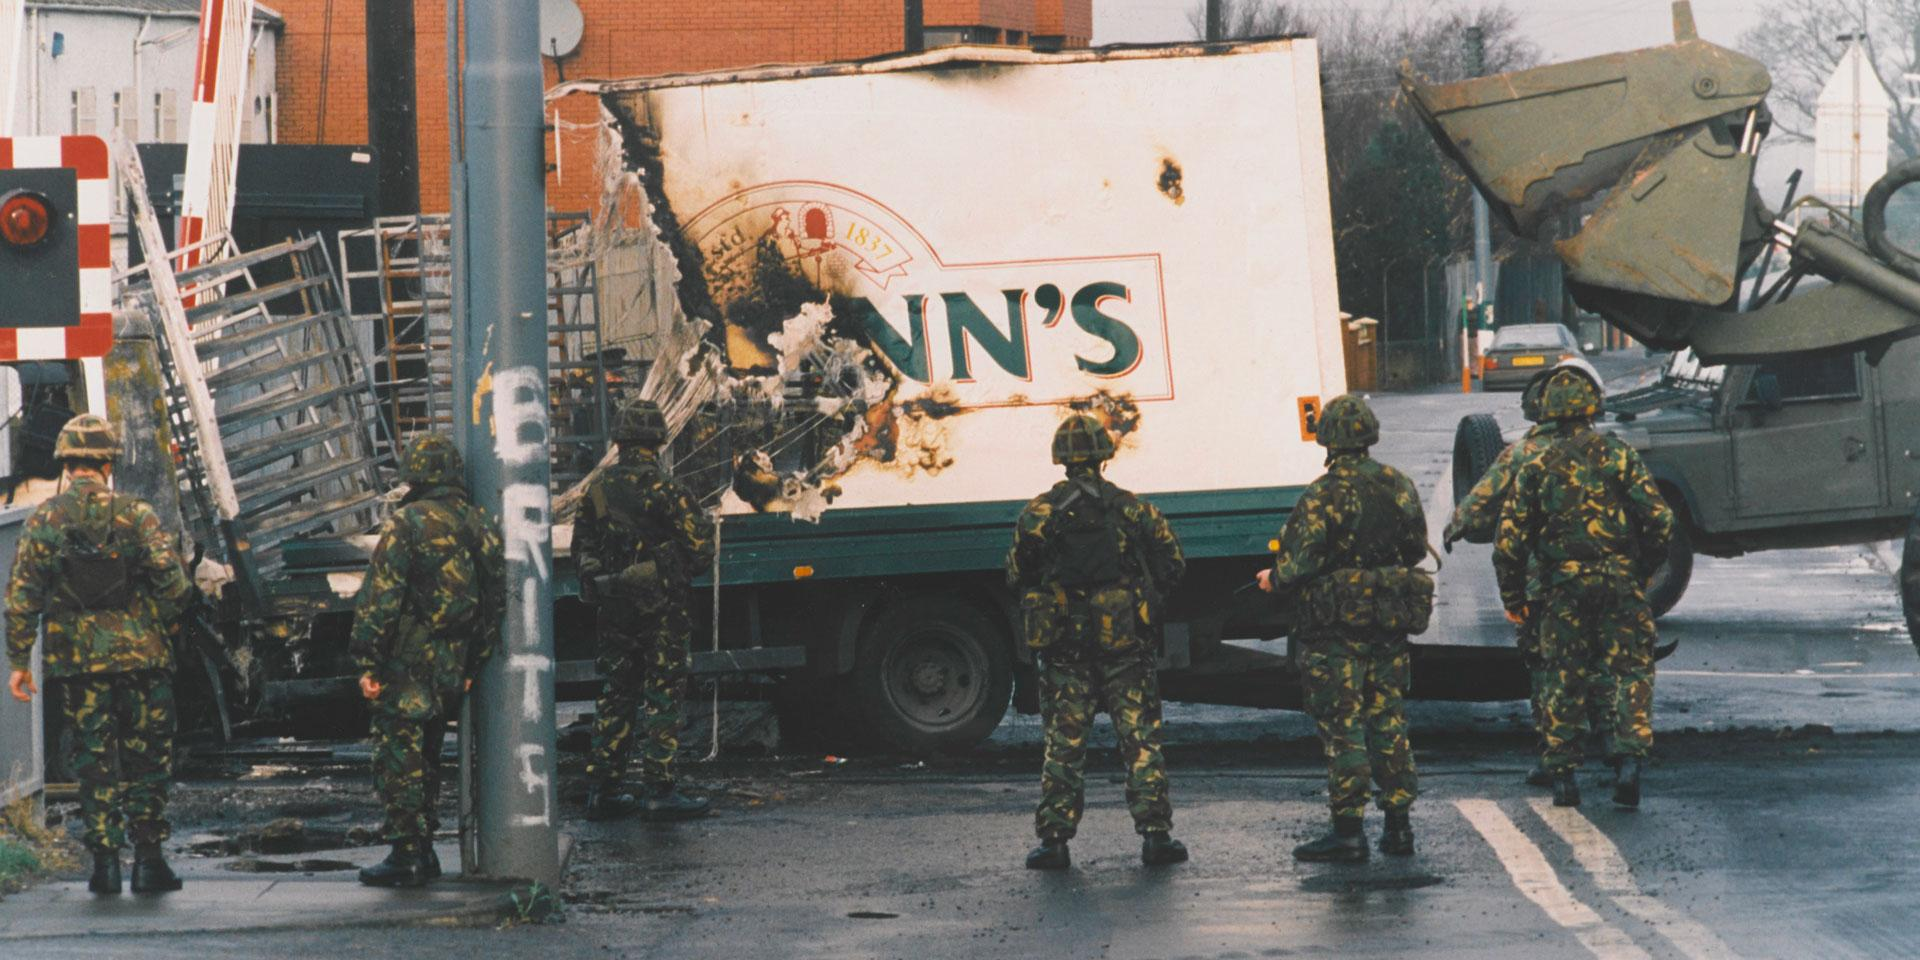 Soldiers of the Ulster Defence Regiment at the scene of a bomb attack, c1990